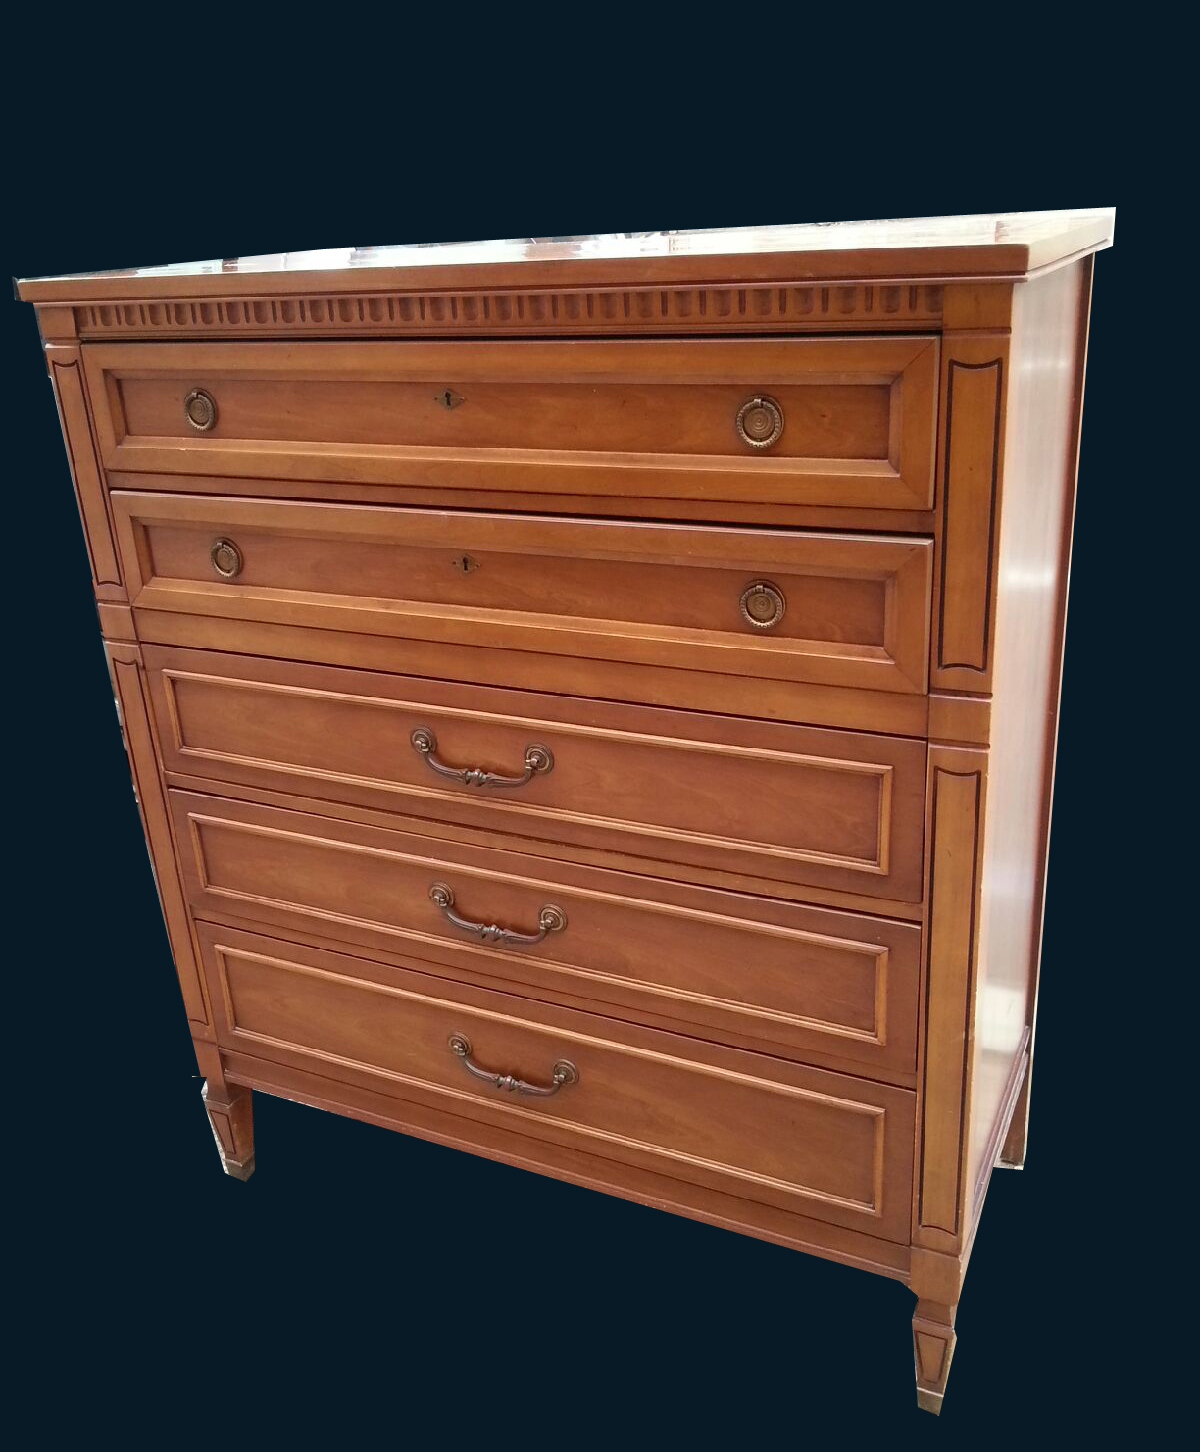 Uhuru Furniture Collectibles Regency Style Chest Of Drawers Sold